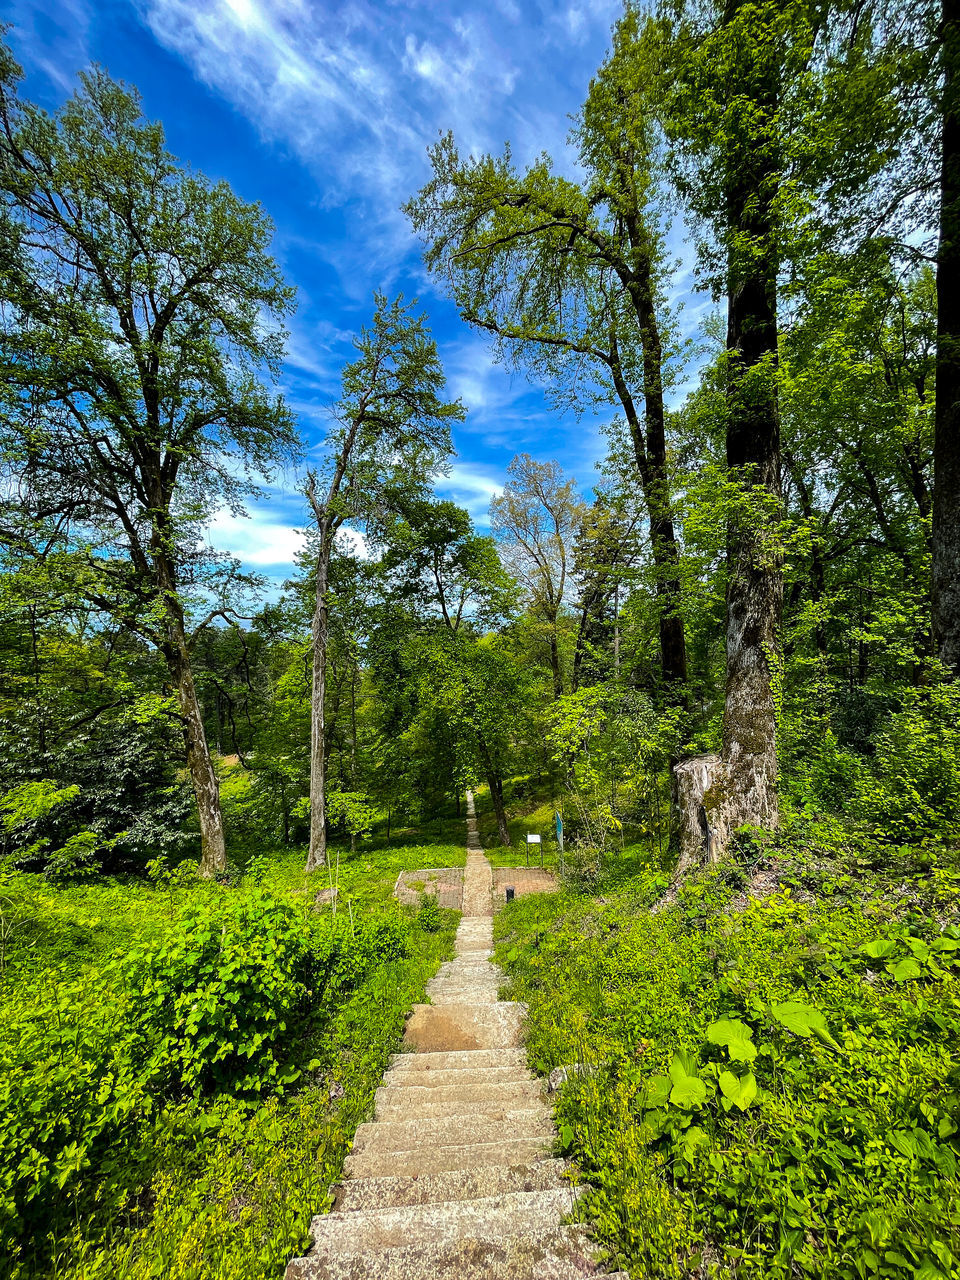 FOOTPATH AMIDST TREES AND PLANTS IN FOREST